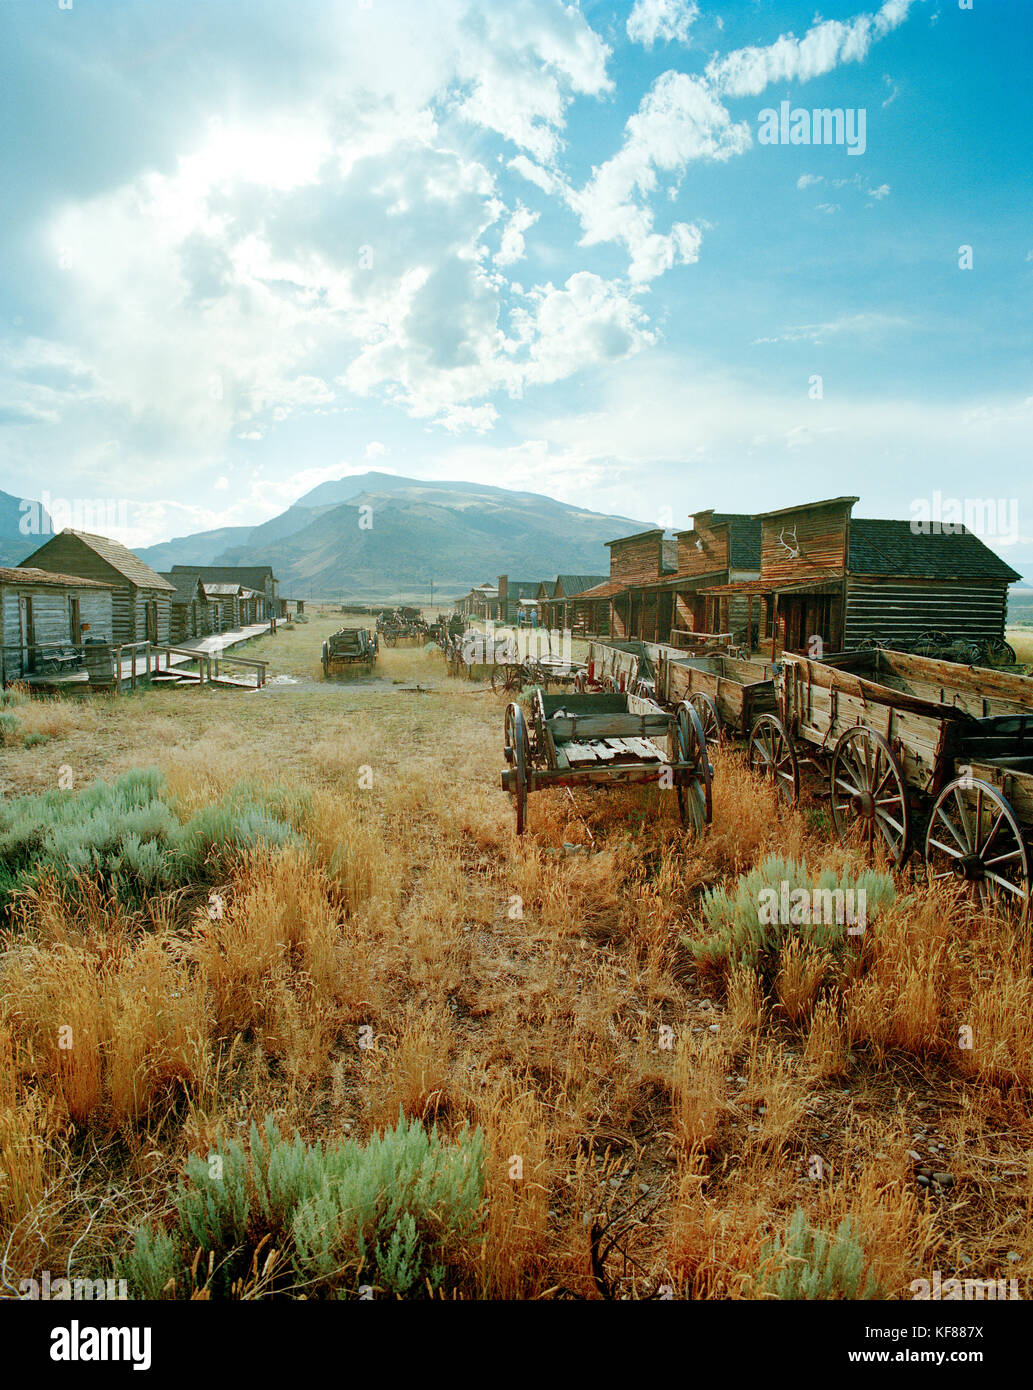 USA, Wyoming, Codyk, Old Trail Town - Stock Image